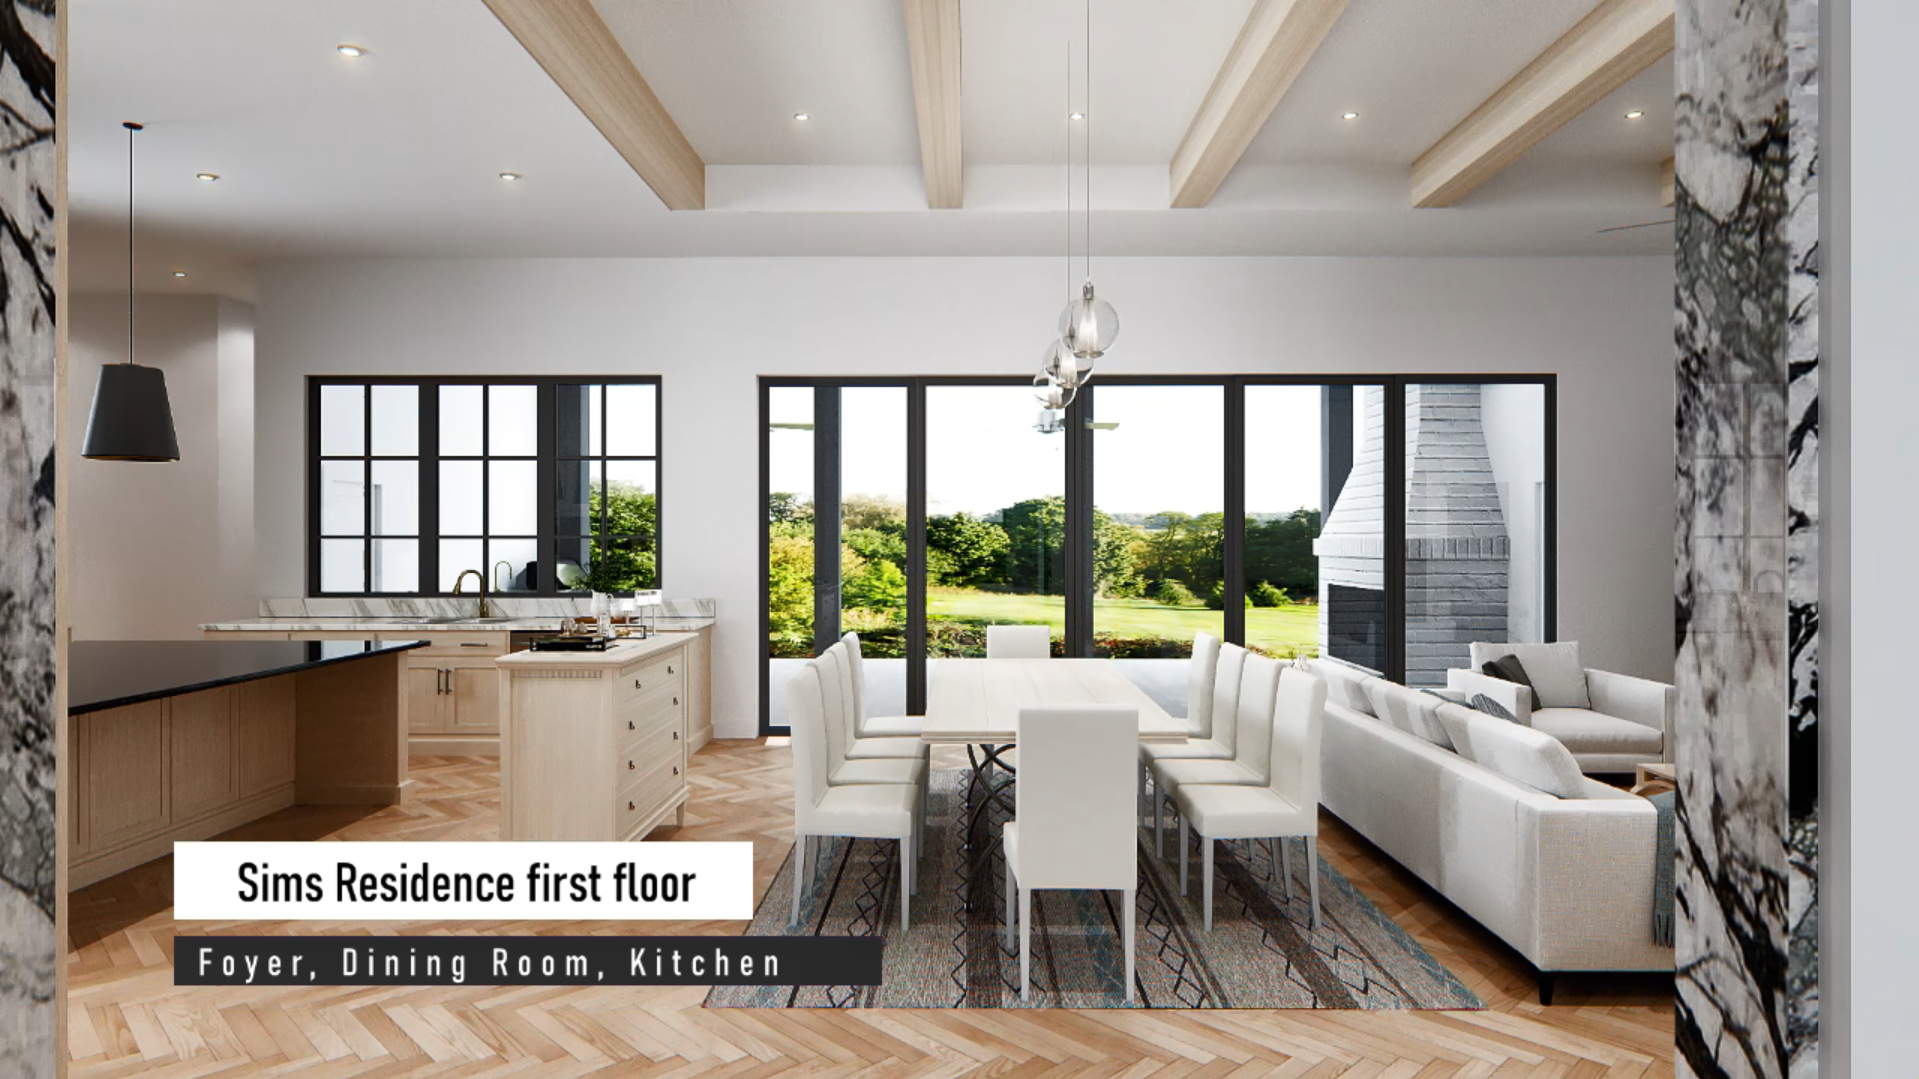 Sims Foyer, Dining room, Kitchen interior image